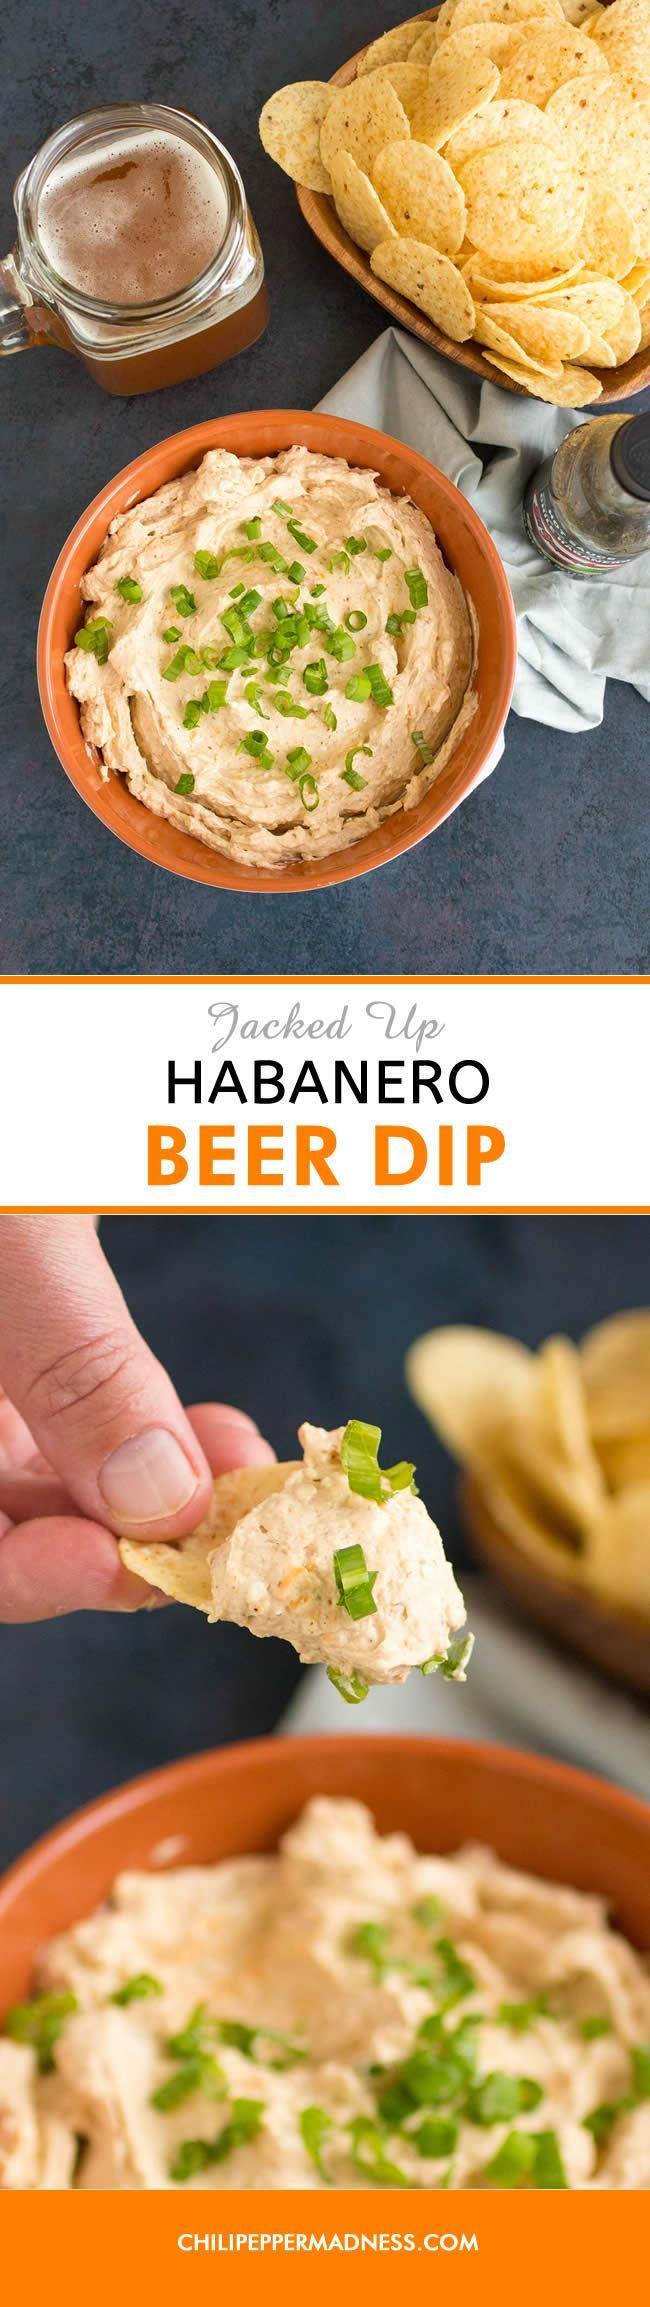 "Jacked Up Habanero Beer Dip - This spicy beer dip recipe is ""jacked up"" with habanero hot sauce, perfect for any party, an anytime snack, and ridiculously easy to bring with you to your favorite venue."